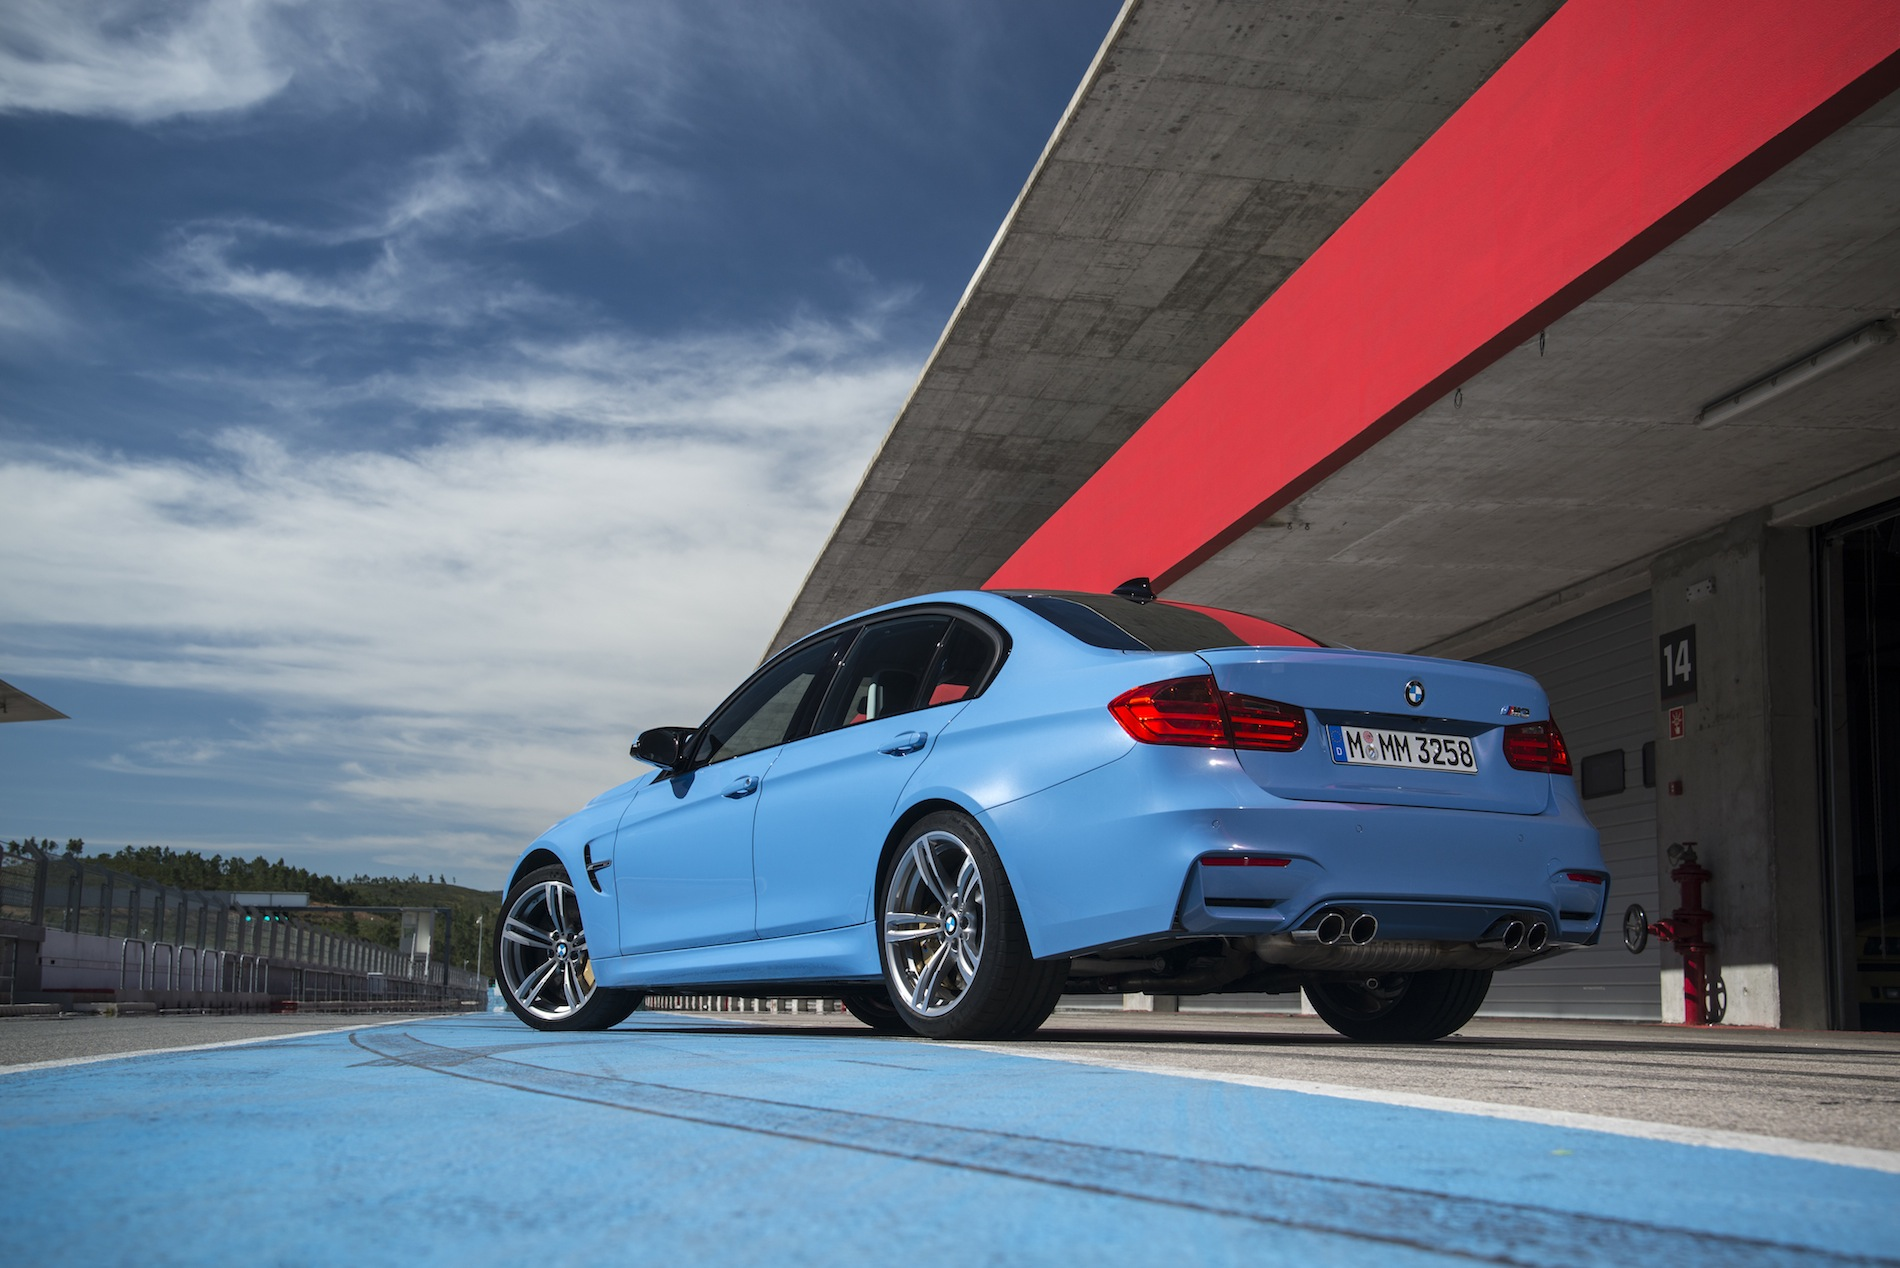 2015 BMW M3 Sedan (F80) Official Specs, Wallpapers, Videos ...